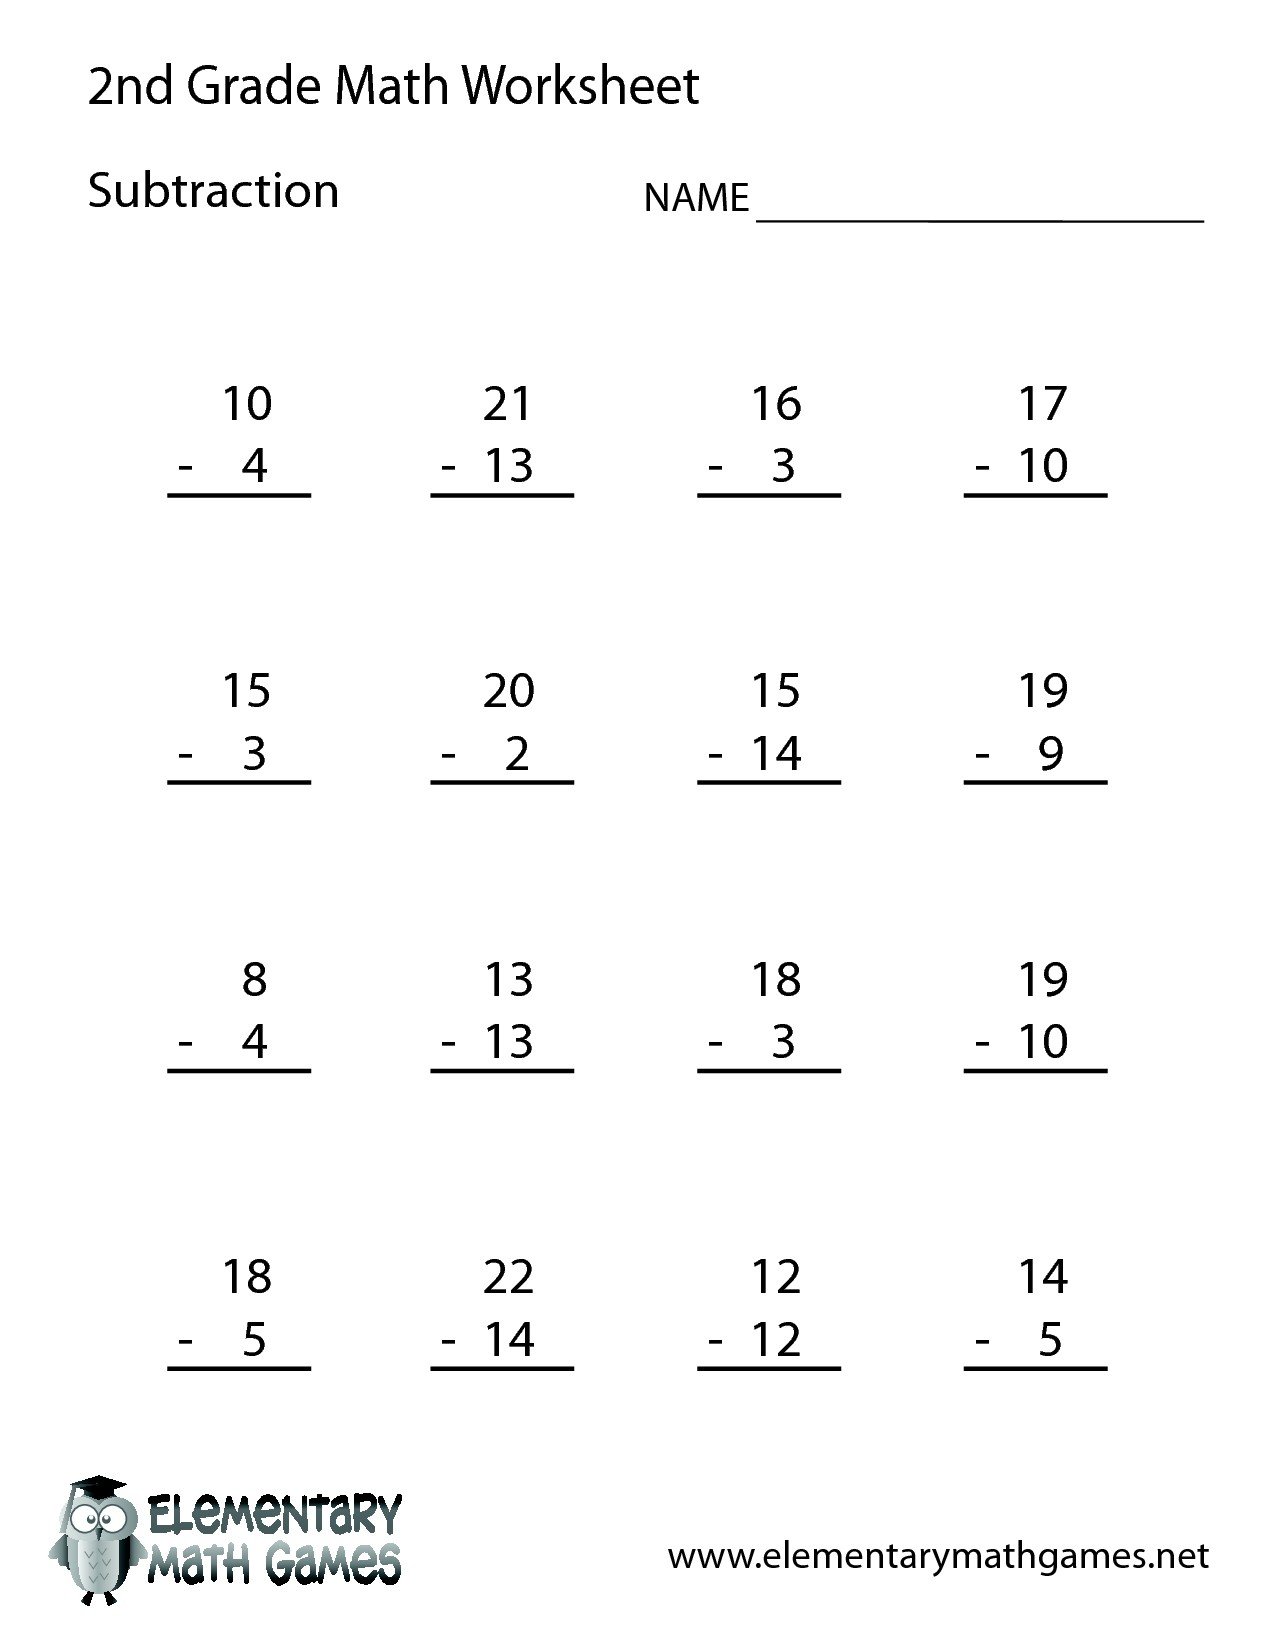 Free Printable Second Grade Worksheets For Download Free - Math - Free Printable Second Grade Worksheets